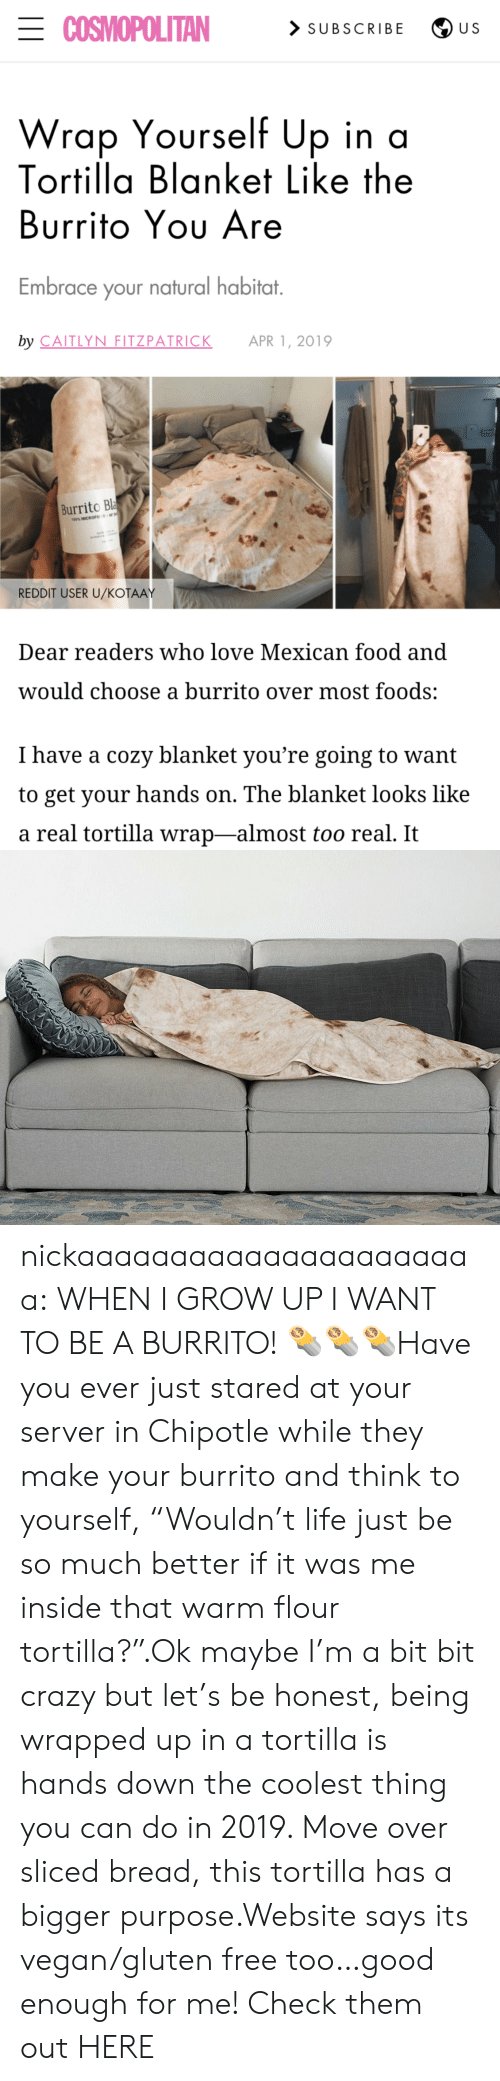 "server: ECOSMOPOLITAN  > SUBSCRIBE  U S  Wrap Yourself Up in a  Tortilla Blanket Like the  Burrito Yου Are  Embrace your natural habitat.  by CAITLYN FITZPATRICK  APR 1, 2019  Burrito Bla  100% MICROFE  REDDIT USER U/KOŤAAY  Dear readers who love Mexican food and  would choose a burrito over most foods:  I have a cozy blanket you're going to want  to get your hands on. The blanket looks like  a real tortilla wrap-almost too real. It nickaaaaaaaaaaaaaaaaaaaaaa:  WHEN I GROW UP I WANT TO BE A BURRITO! 🌯🌯🌯Have you ever just stared at your server in Chipotle while they make your burrito and think to yourself, ""Wouldn't life just be so much better if it was me inside that warm flour tortilla?"".Ok maybe I'm a bit bit crazy but let's be honest, being wrapped up in a tortilla is hands down the coolest thing you can do in 2019. Move over sliced bread, this tortilla has a bigger purpose.Website says its vegan/gluten free too…good enough for me! Check them out HERE"